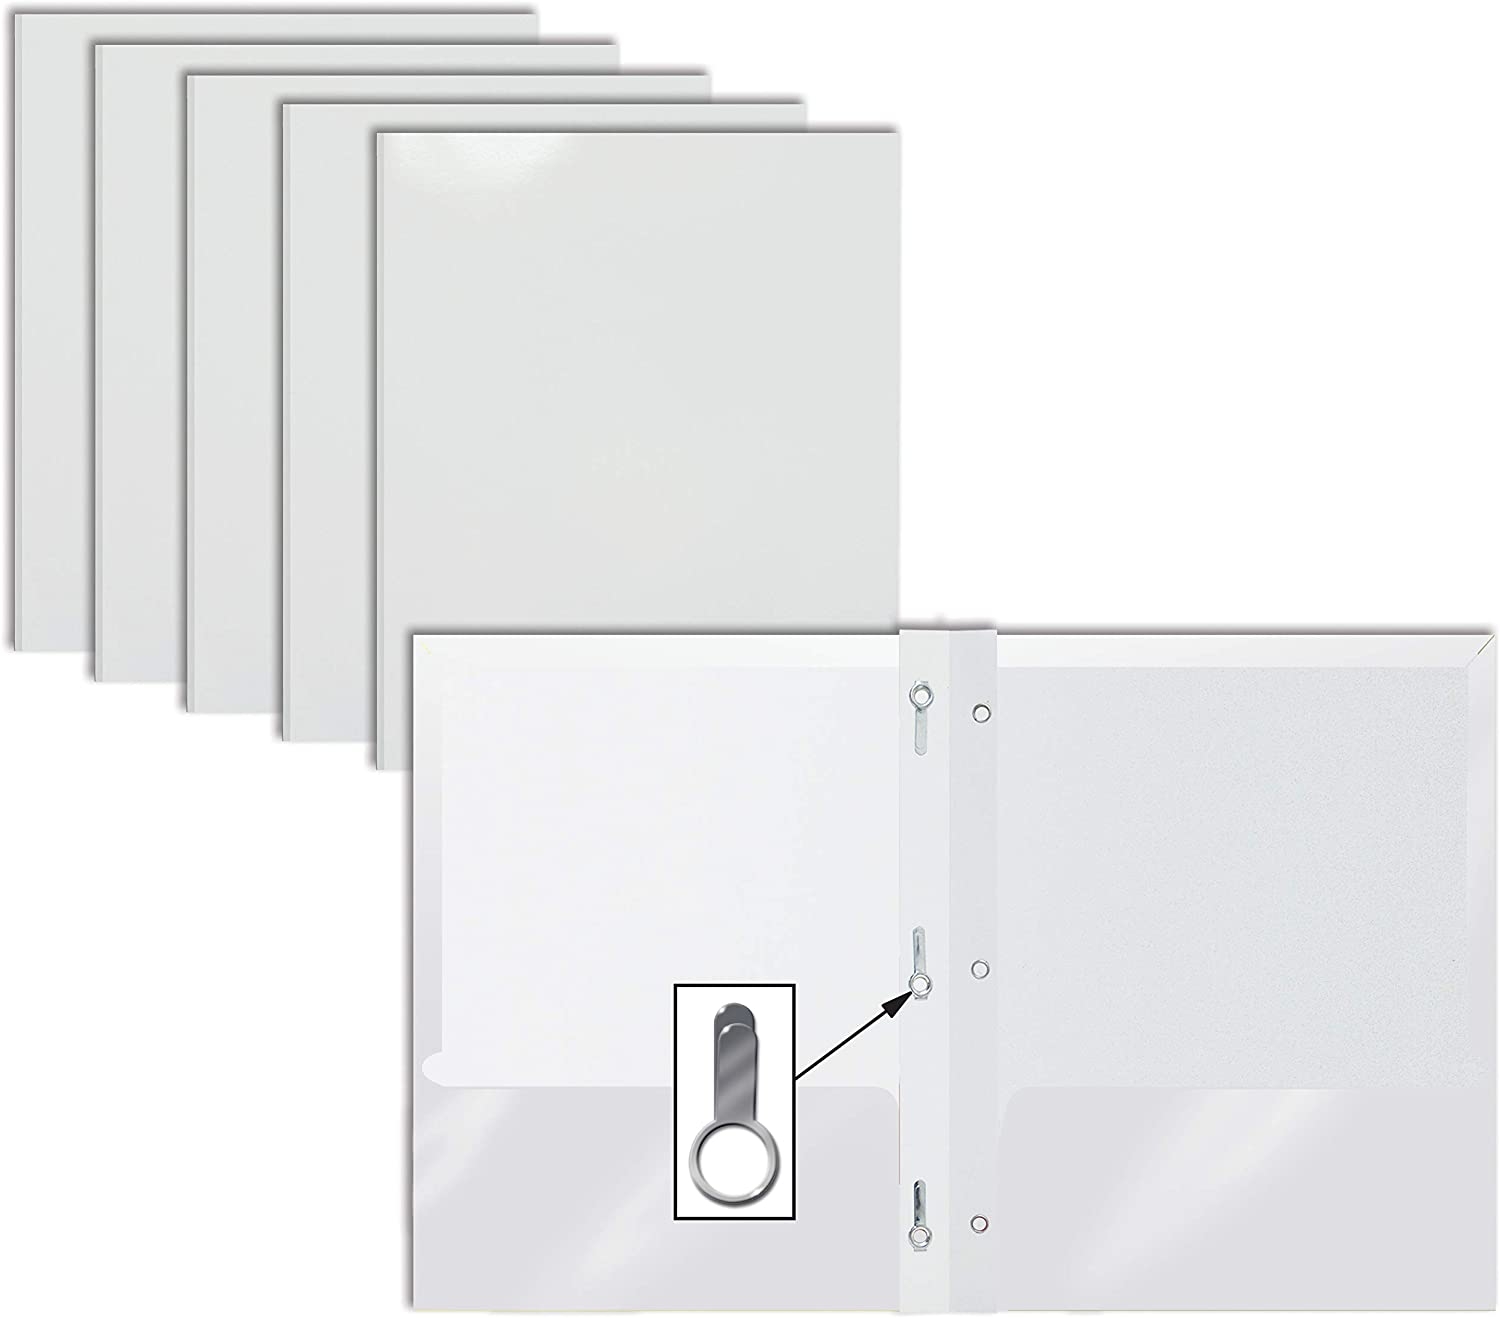 2 Pocket Glossy White Paper Folders with Prongs, 25 Pack, by Better Office Products, Letter Size, High Gloss White Paper Portfolios with 3 Metal Prong Fasteners, Box of 25 Glossy White Folders